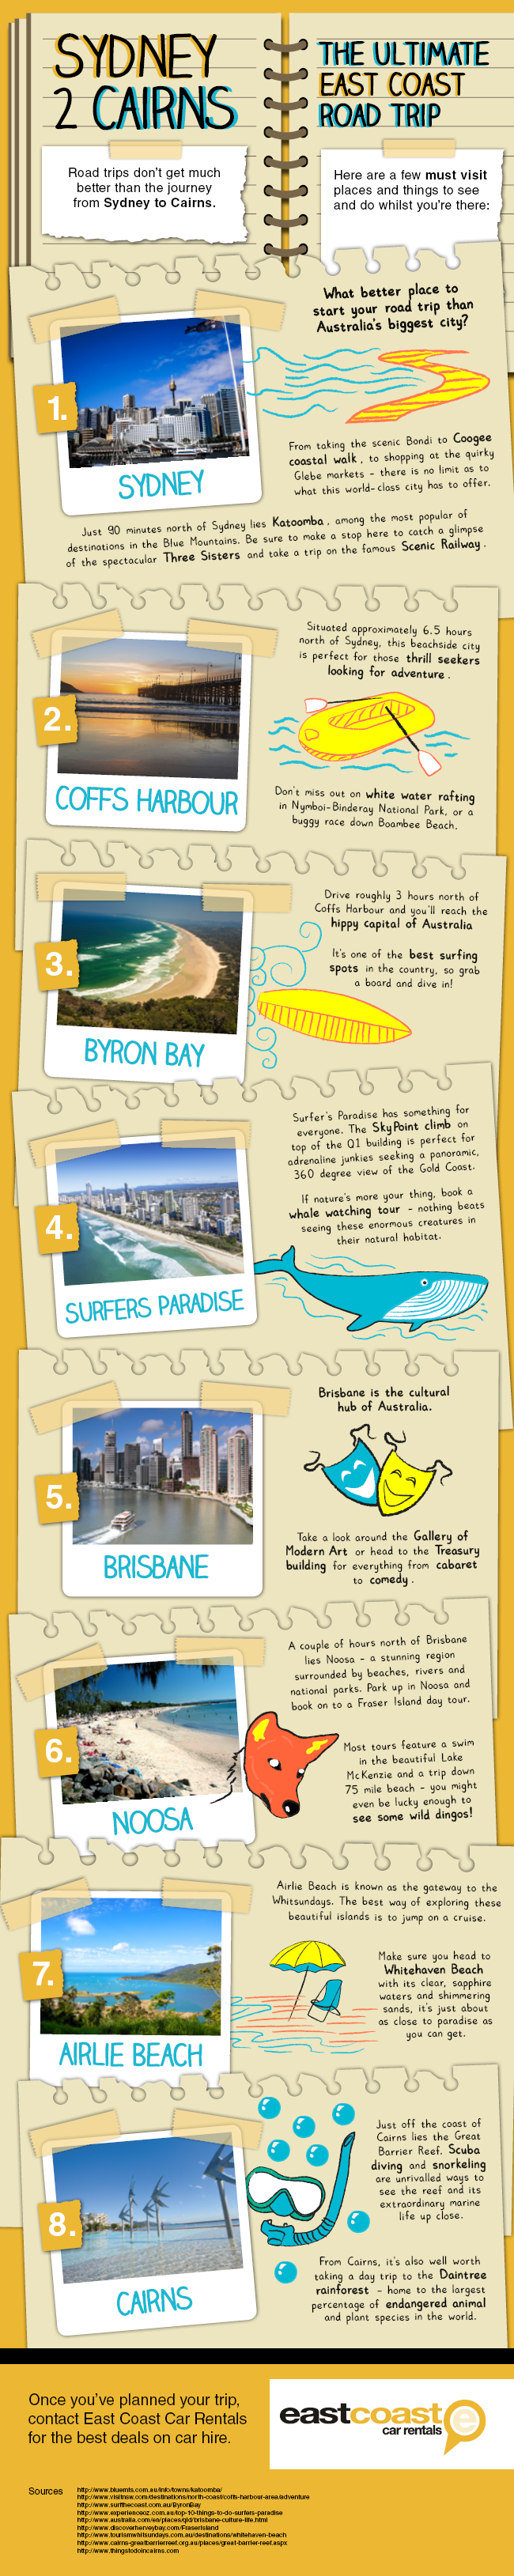 Sydney to Cairns ultimate road trip infographic